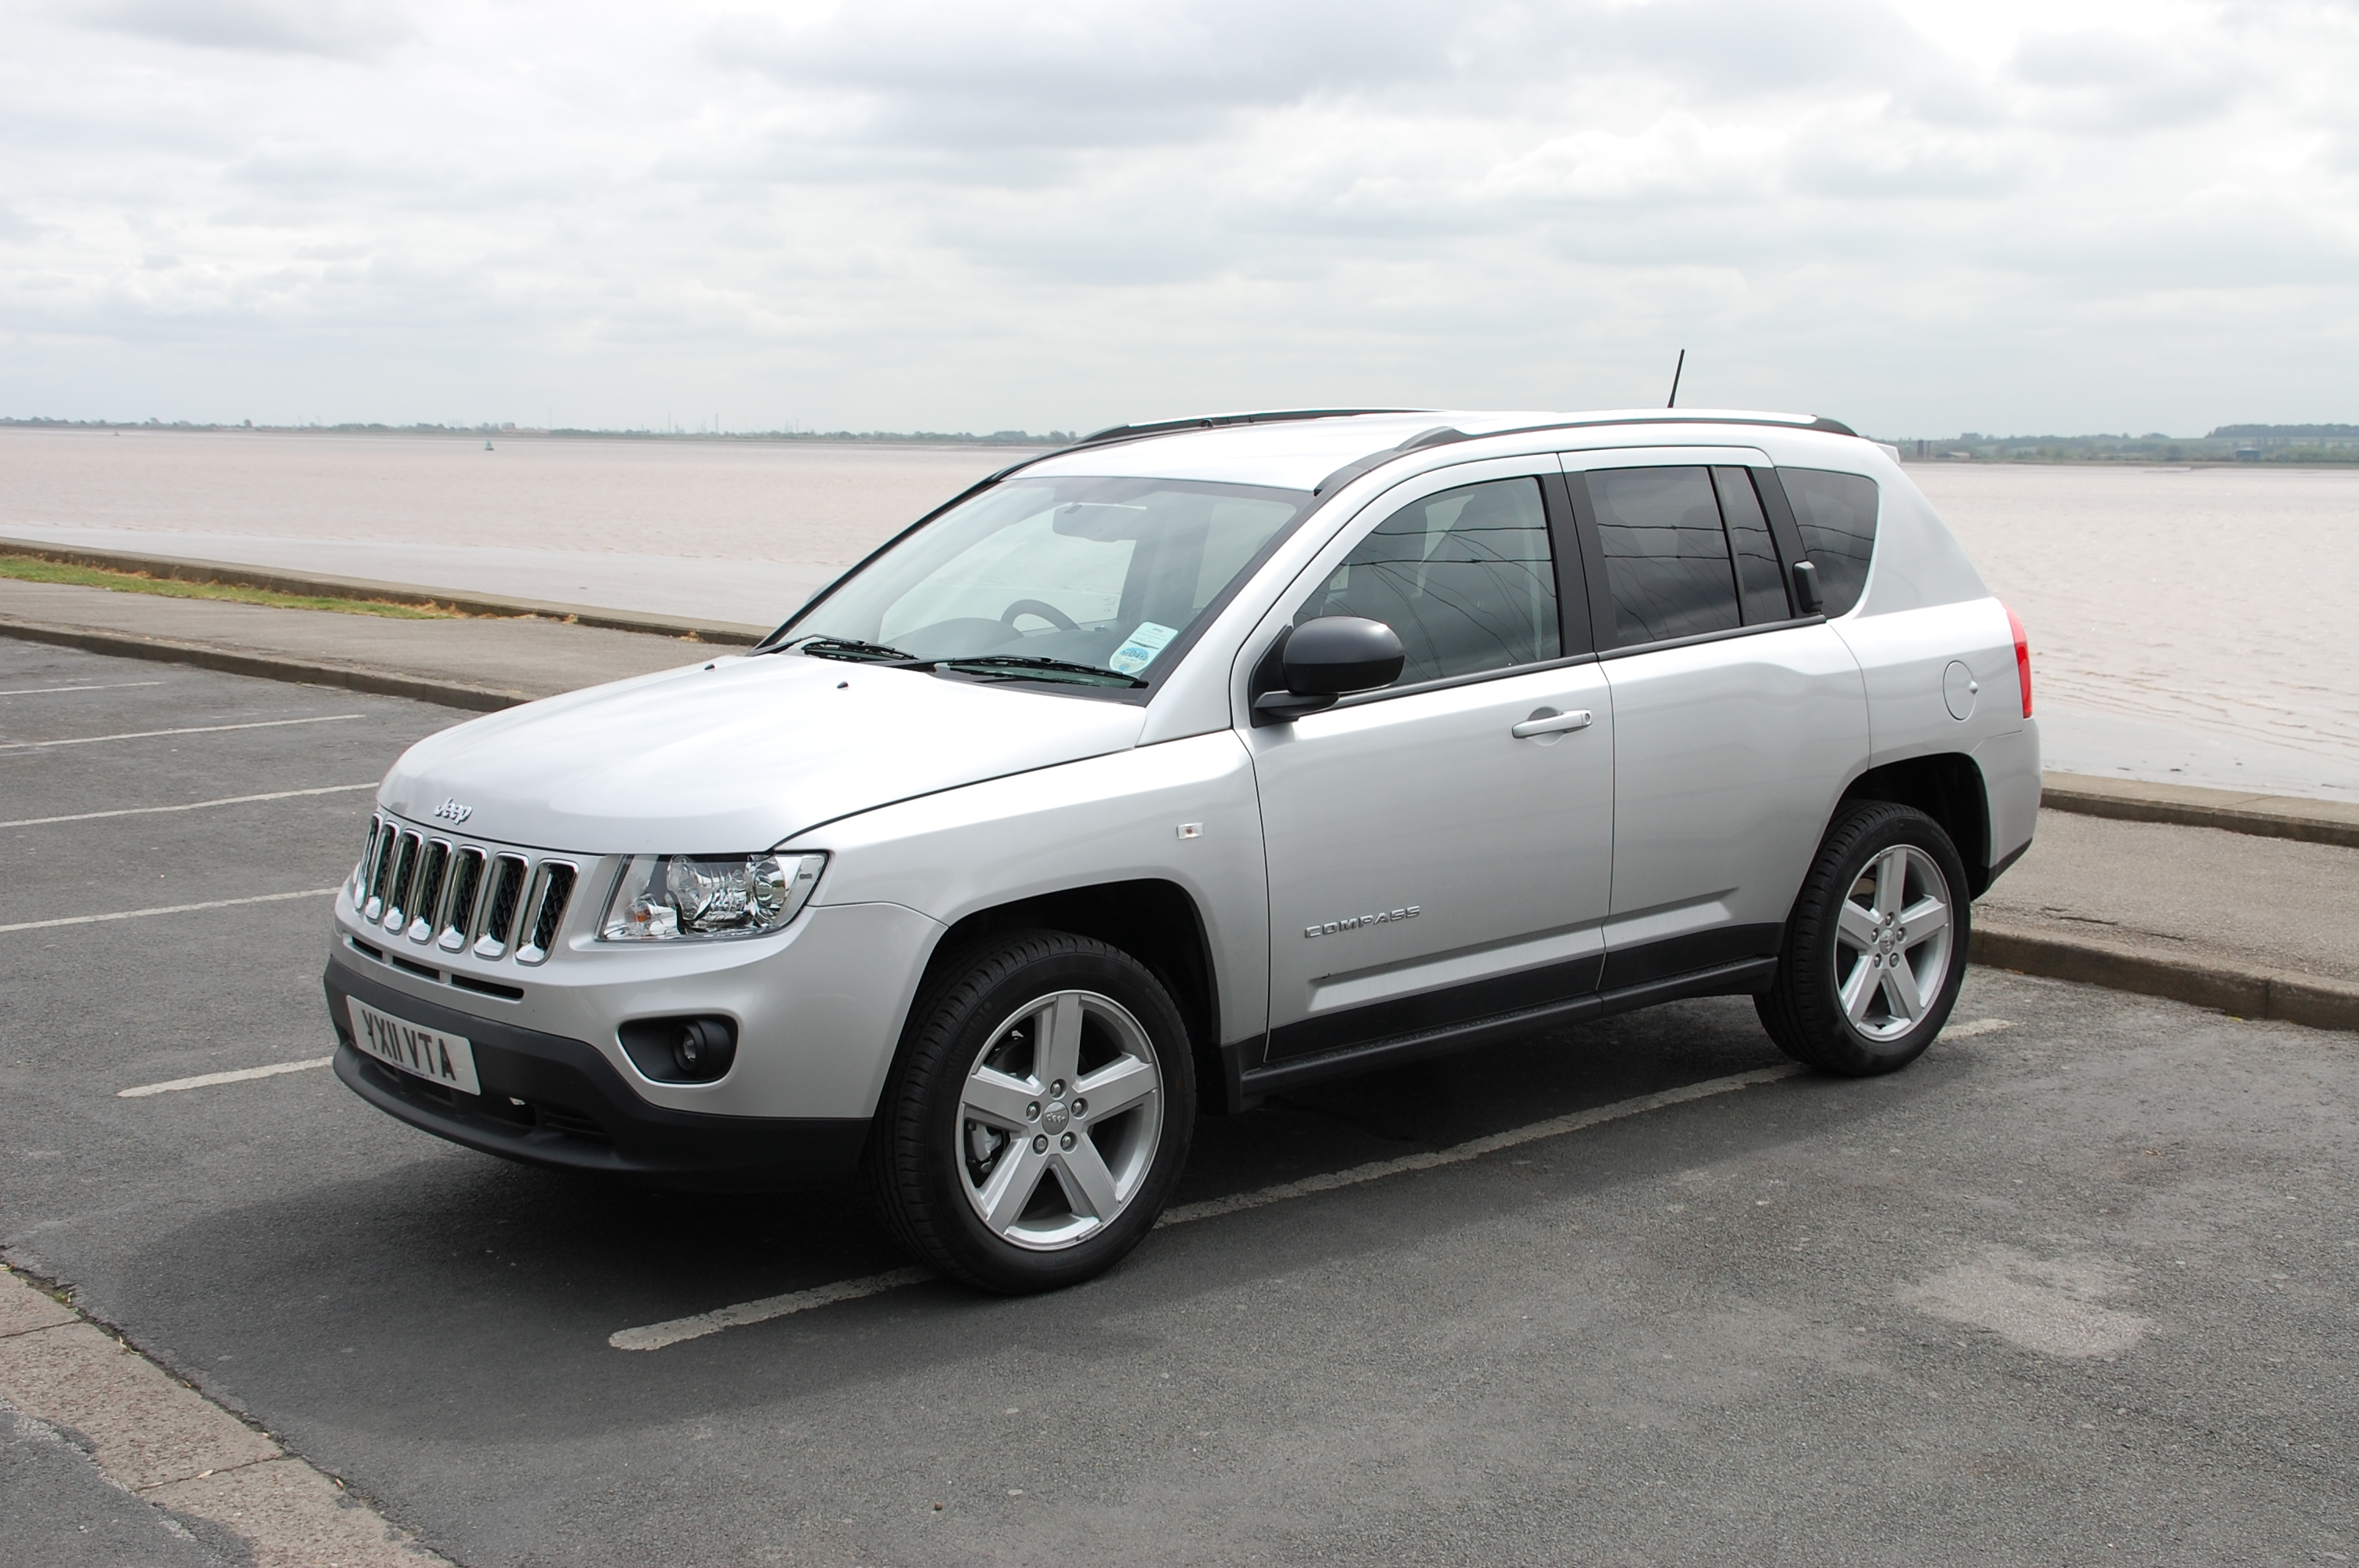 jeep compass 2 4 cvt limited 4 4 patriot 2 2 crd limited 4 4 road tests petroleum vitae. Black Bedroom Furniture Sets. Home Design Ideas